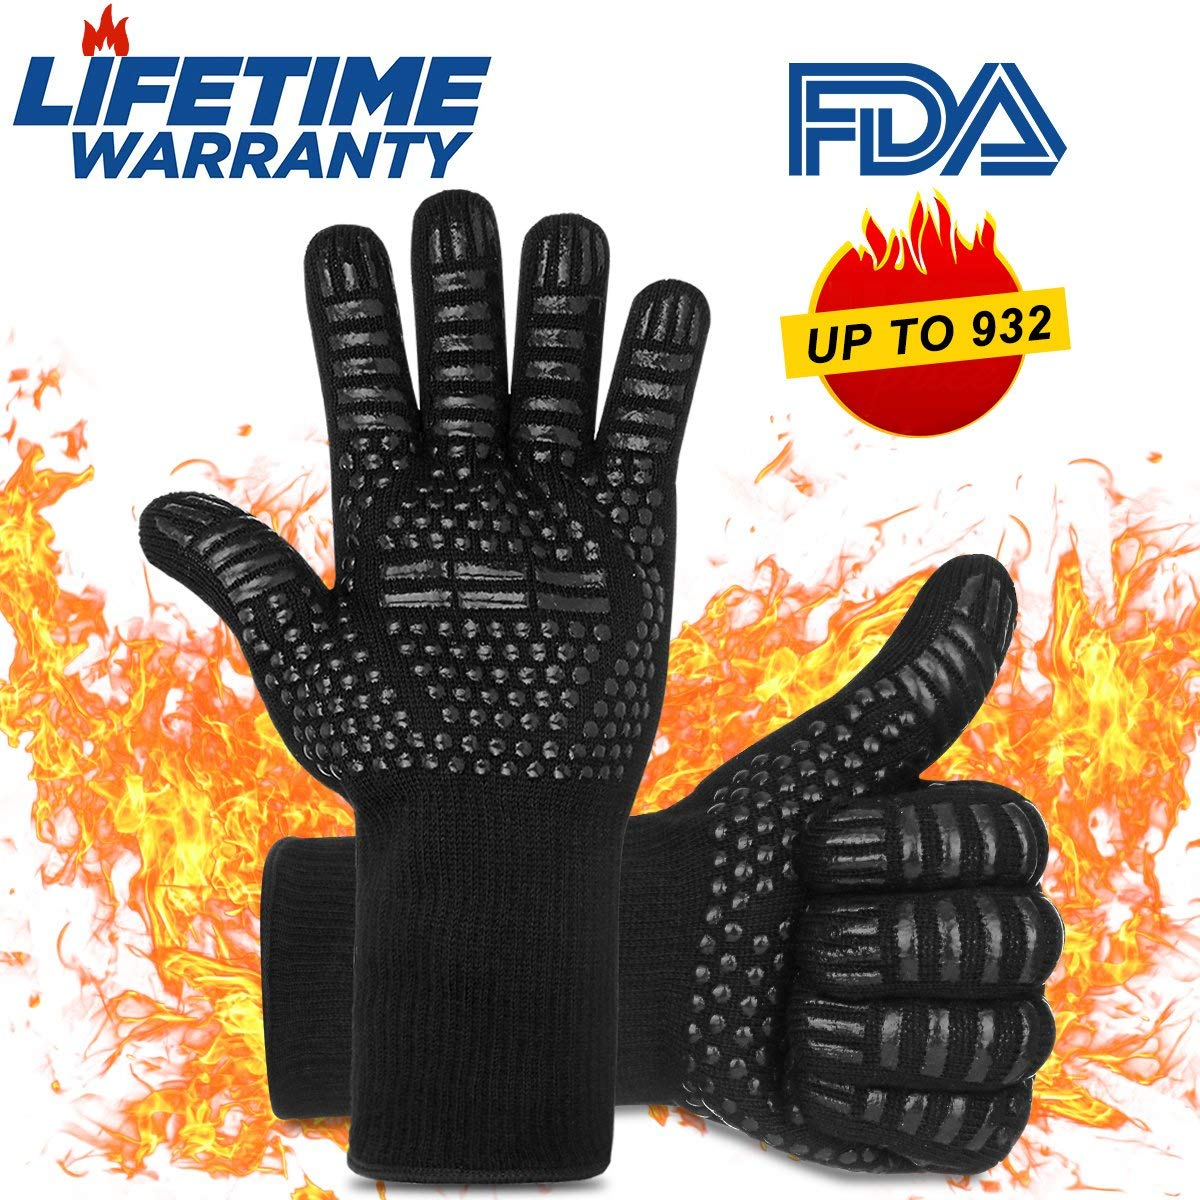 RongGu BBQ Cooking Gloves Heat Resistant Gloves Oven Mitts for Cooking,Grilling,Frying&Baking,Microwave,High Performance Heat Resistance Insulated Gloves-1 Pair(Black)